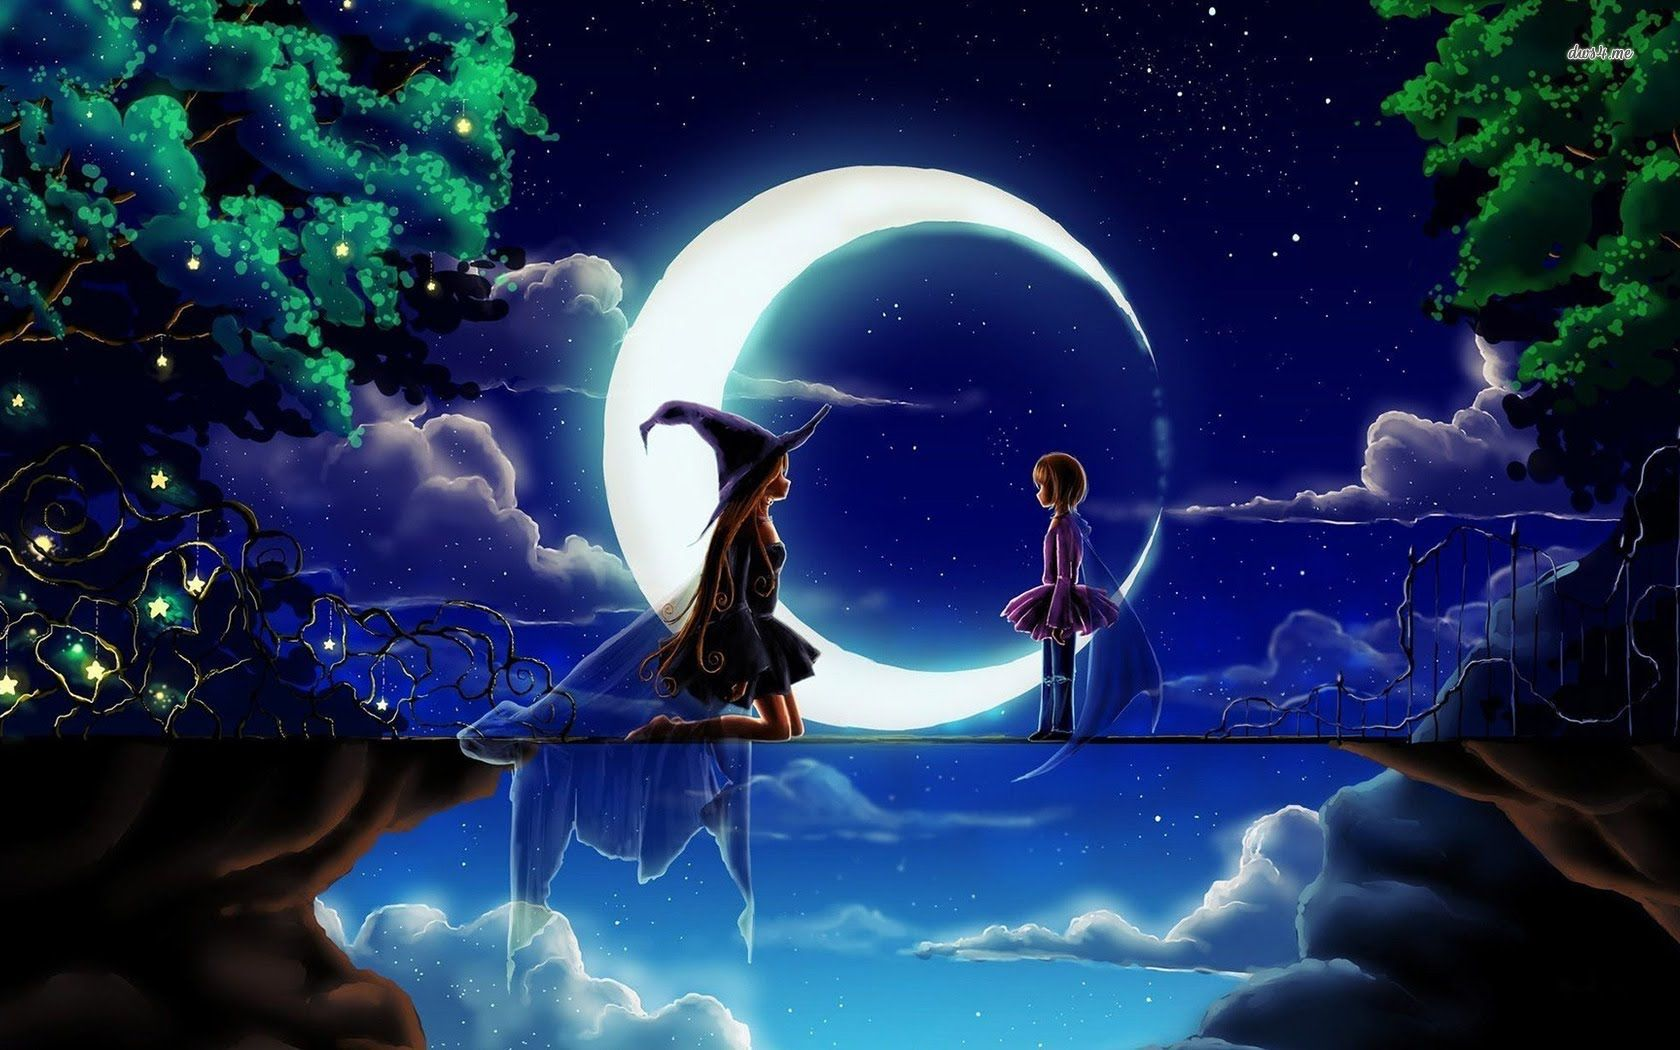 W Magic Fantasy Music W Tales Of The Night Original Witch Wallpaper World Wallpaper Anime Wallpaper